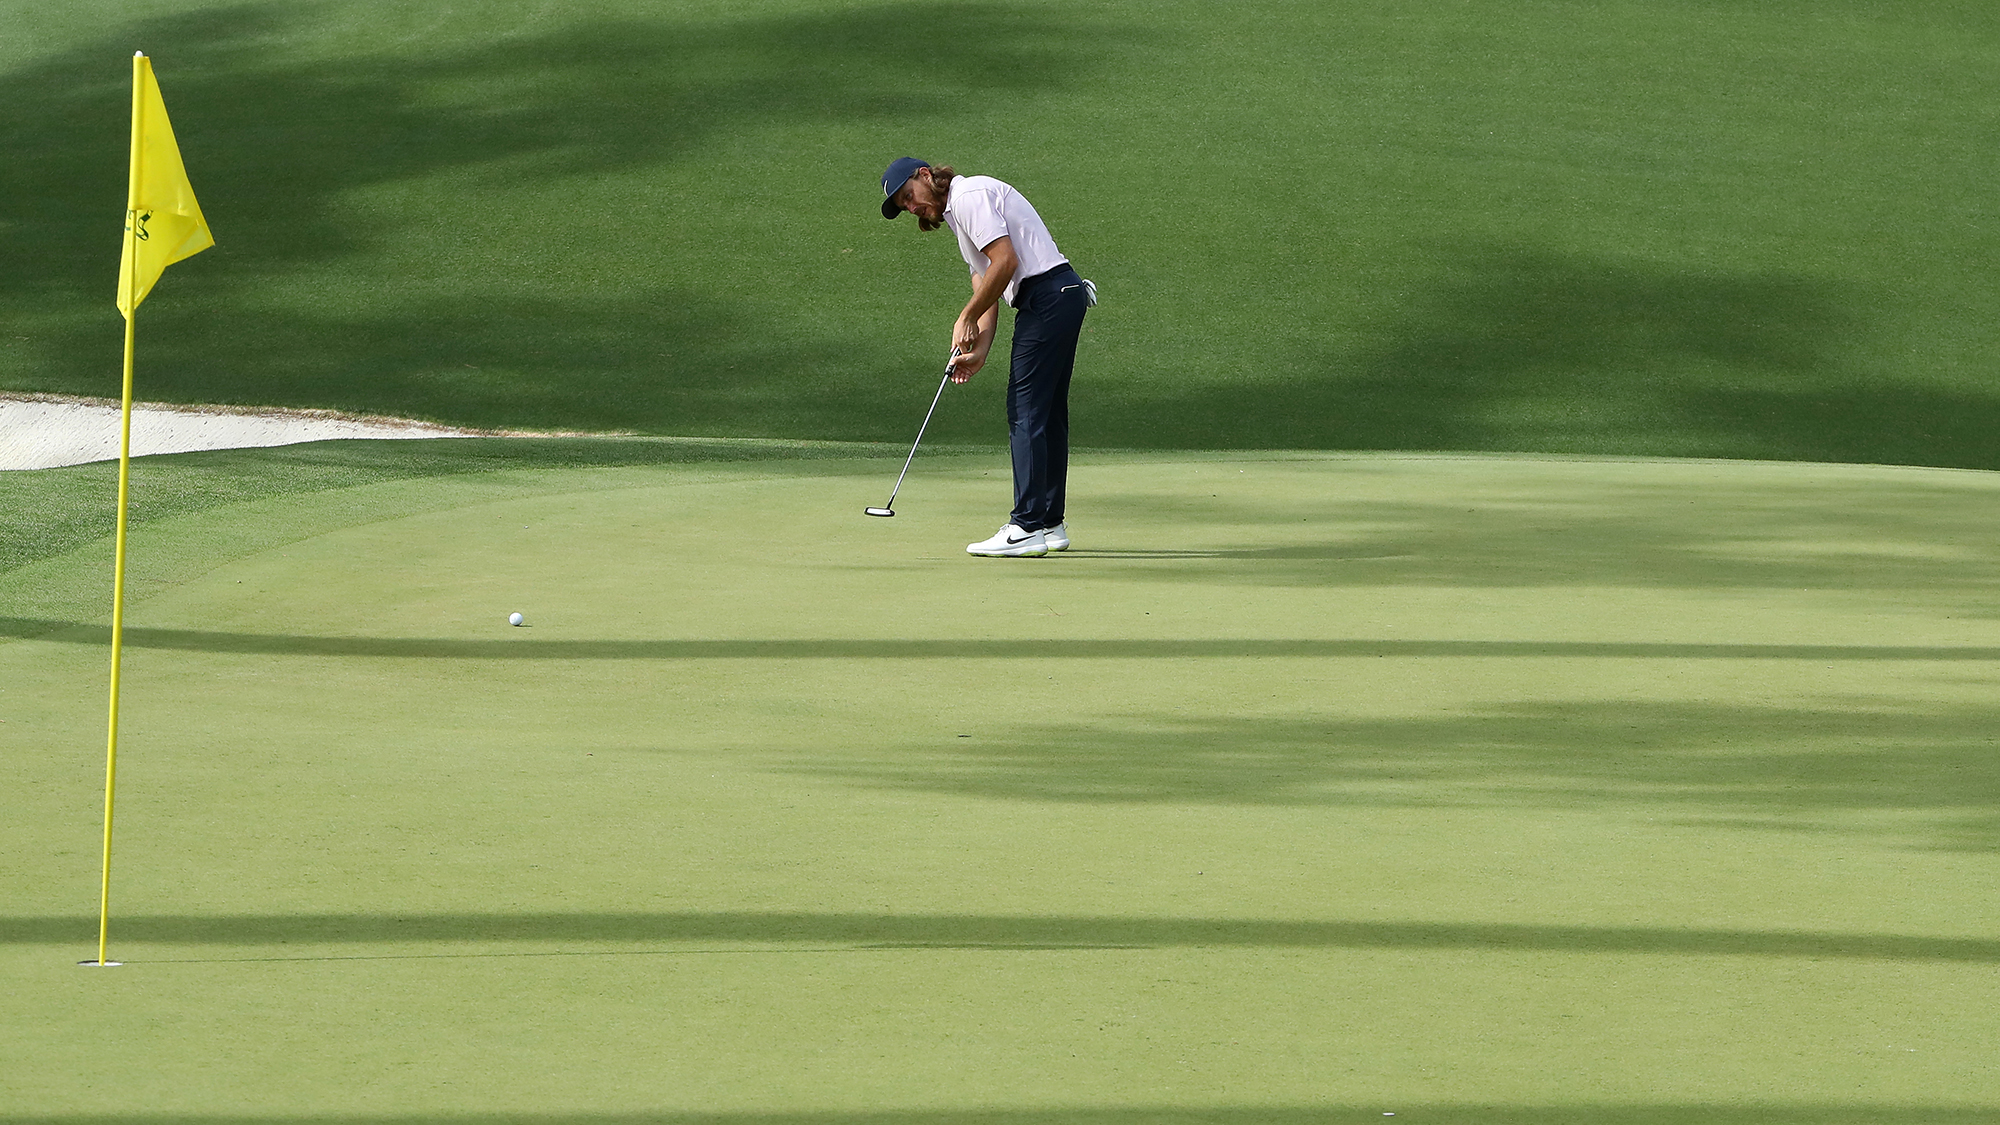 Tommy fleetwood putt flagstick in augusta national